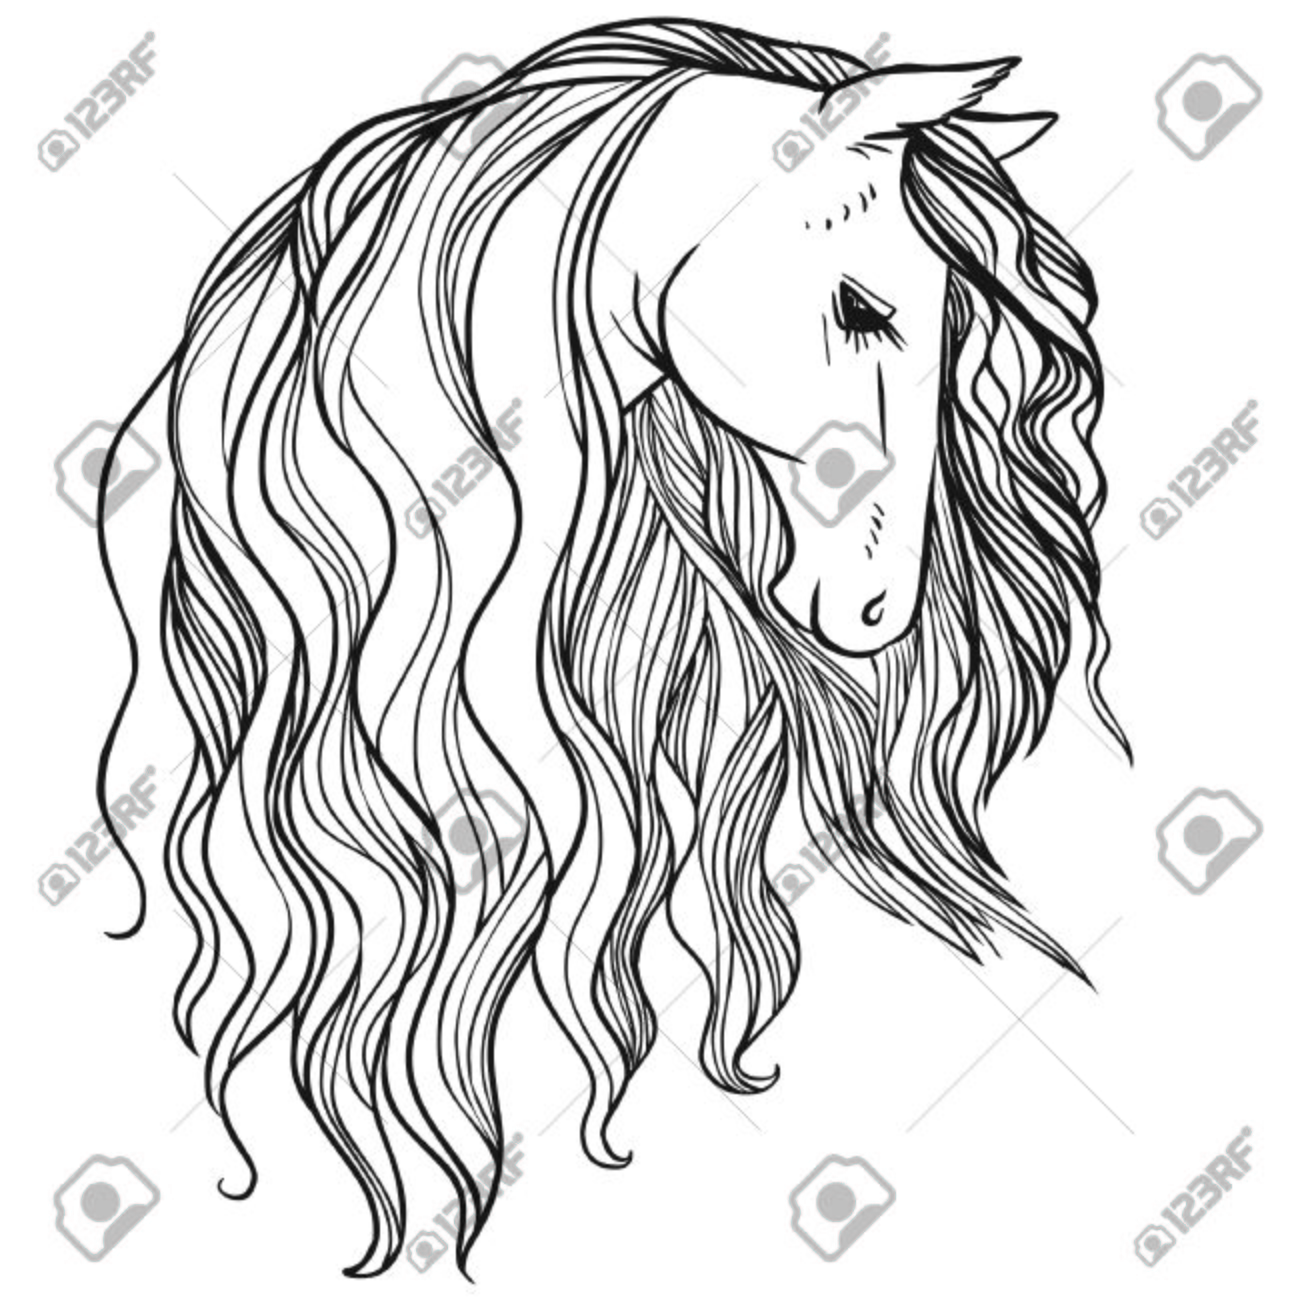 1300x1300 Horse's Head With Beautiful Long Mane. Vector Hand Drawn